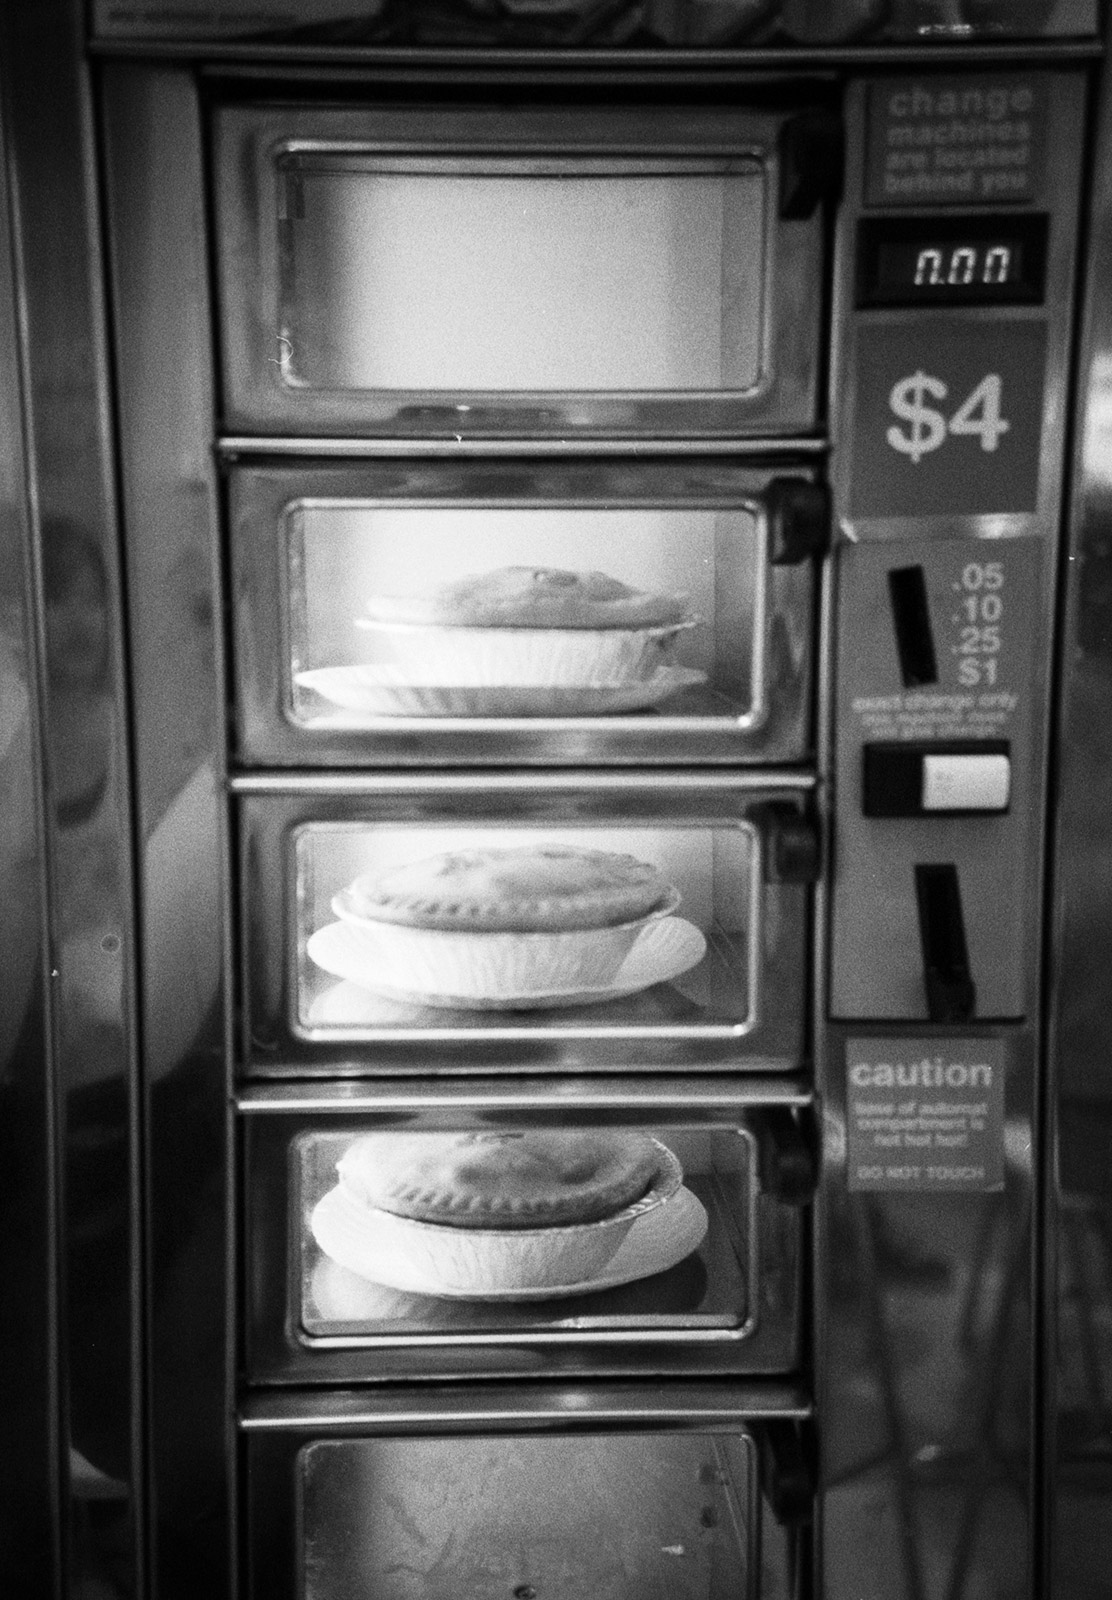 Pies in vending machine